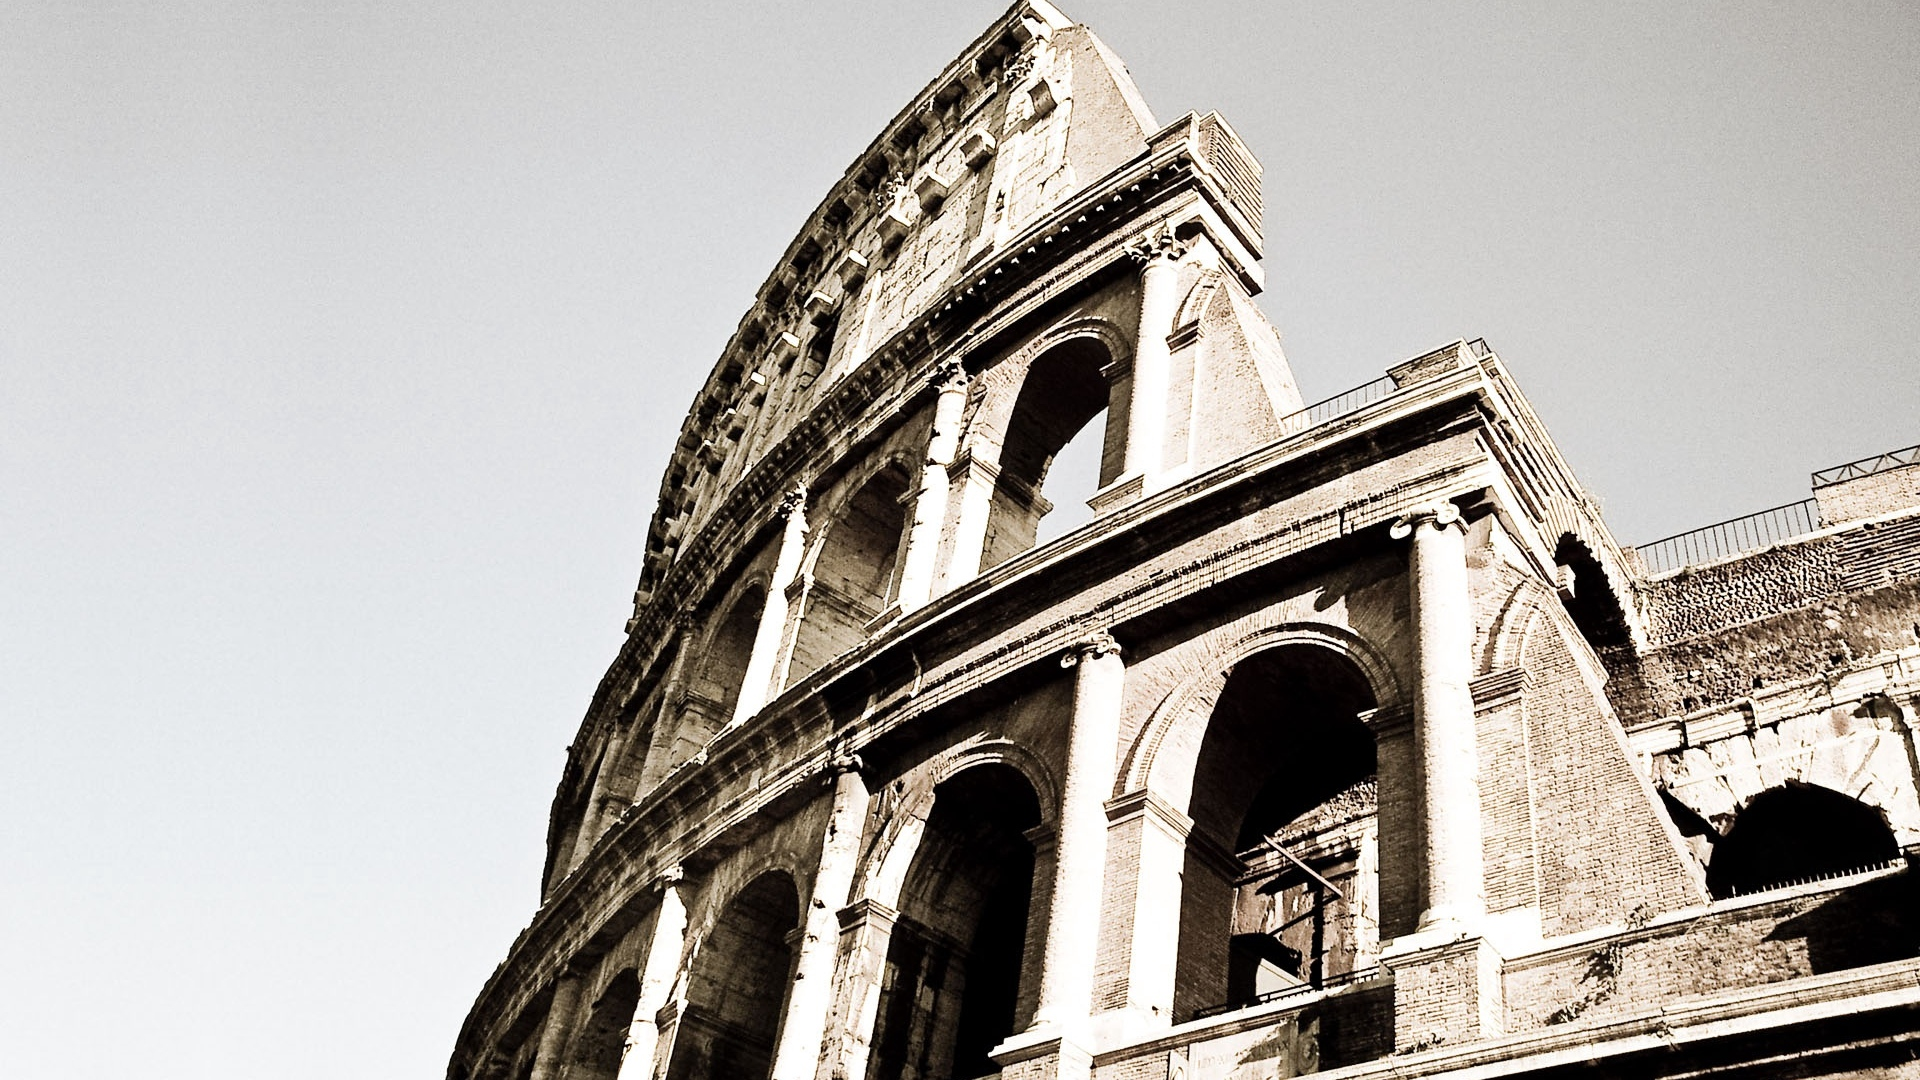 colosseum rome italy black white old x